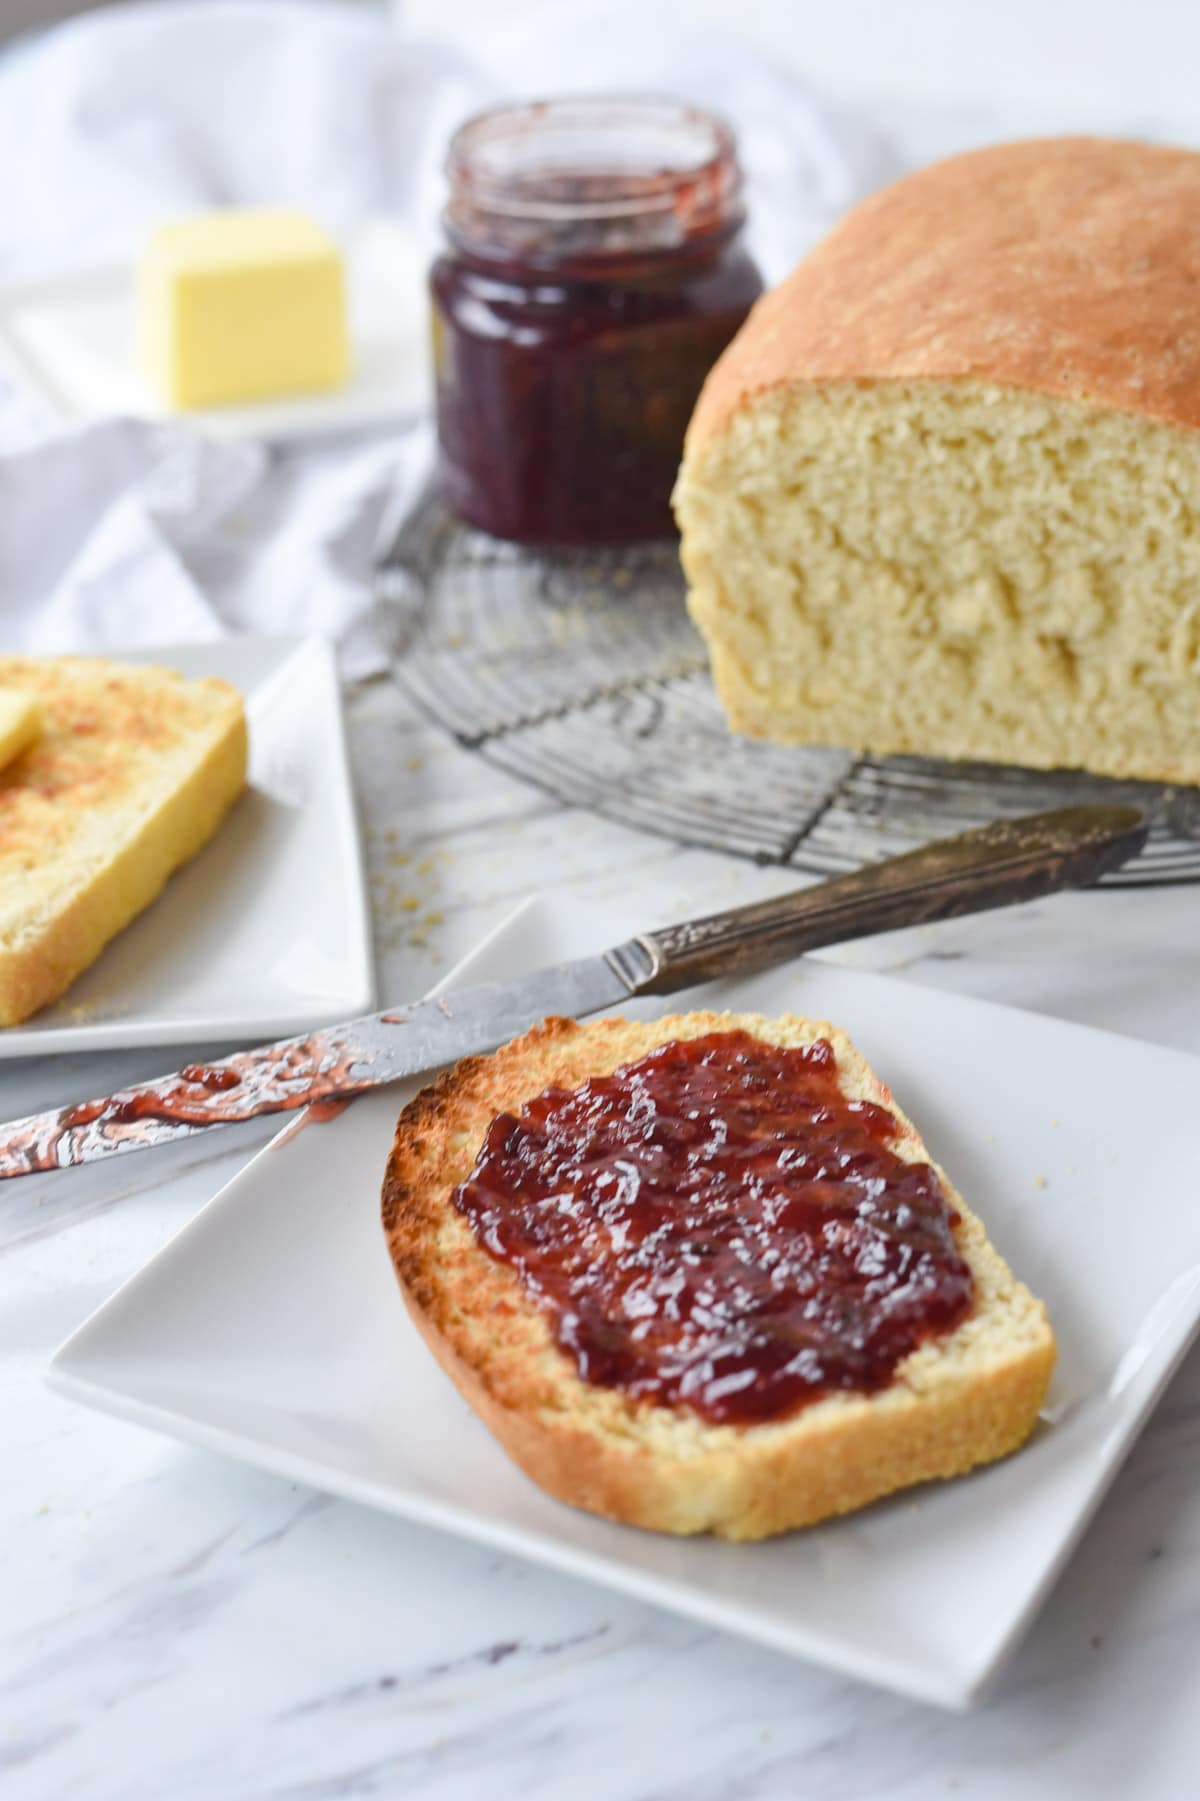 english muffin bread with jam on it